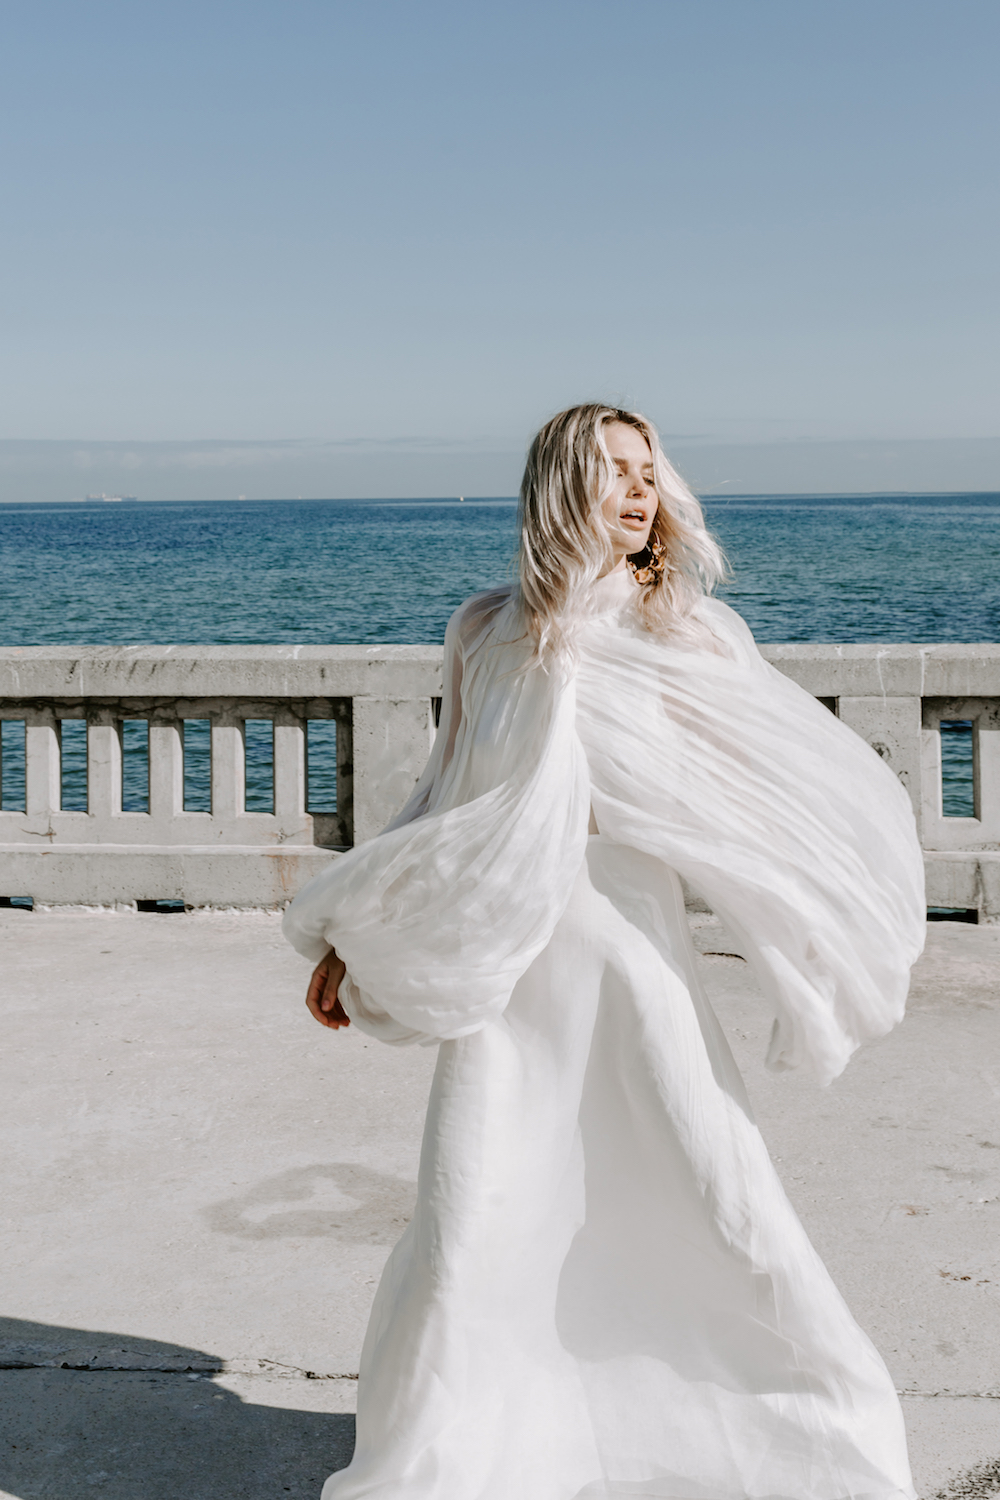 L'eto Bridal featured in the LOVE FIND CO. Editorial